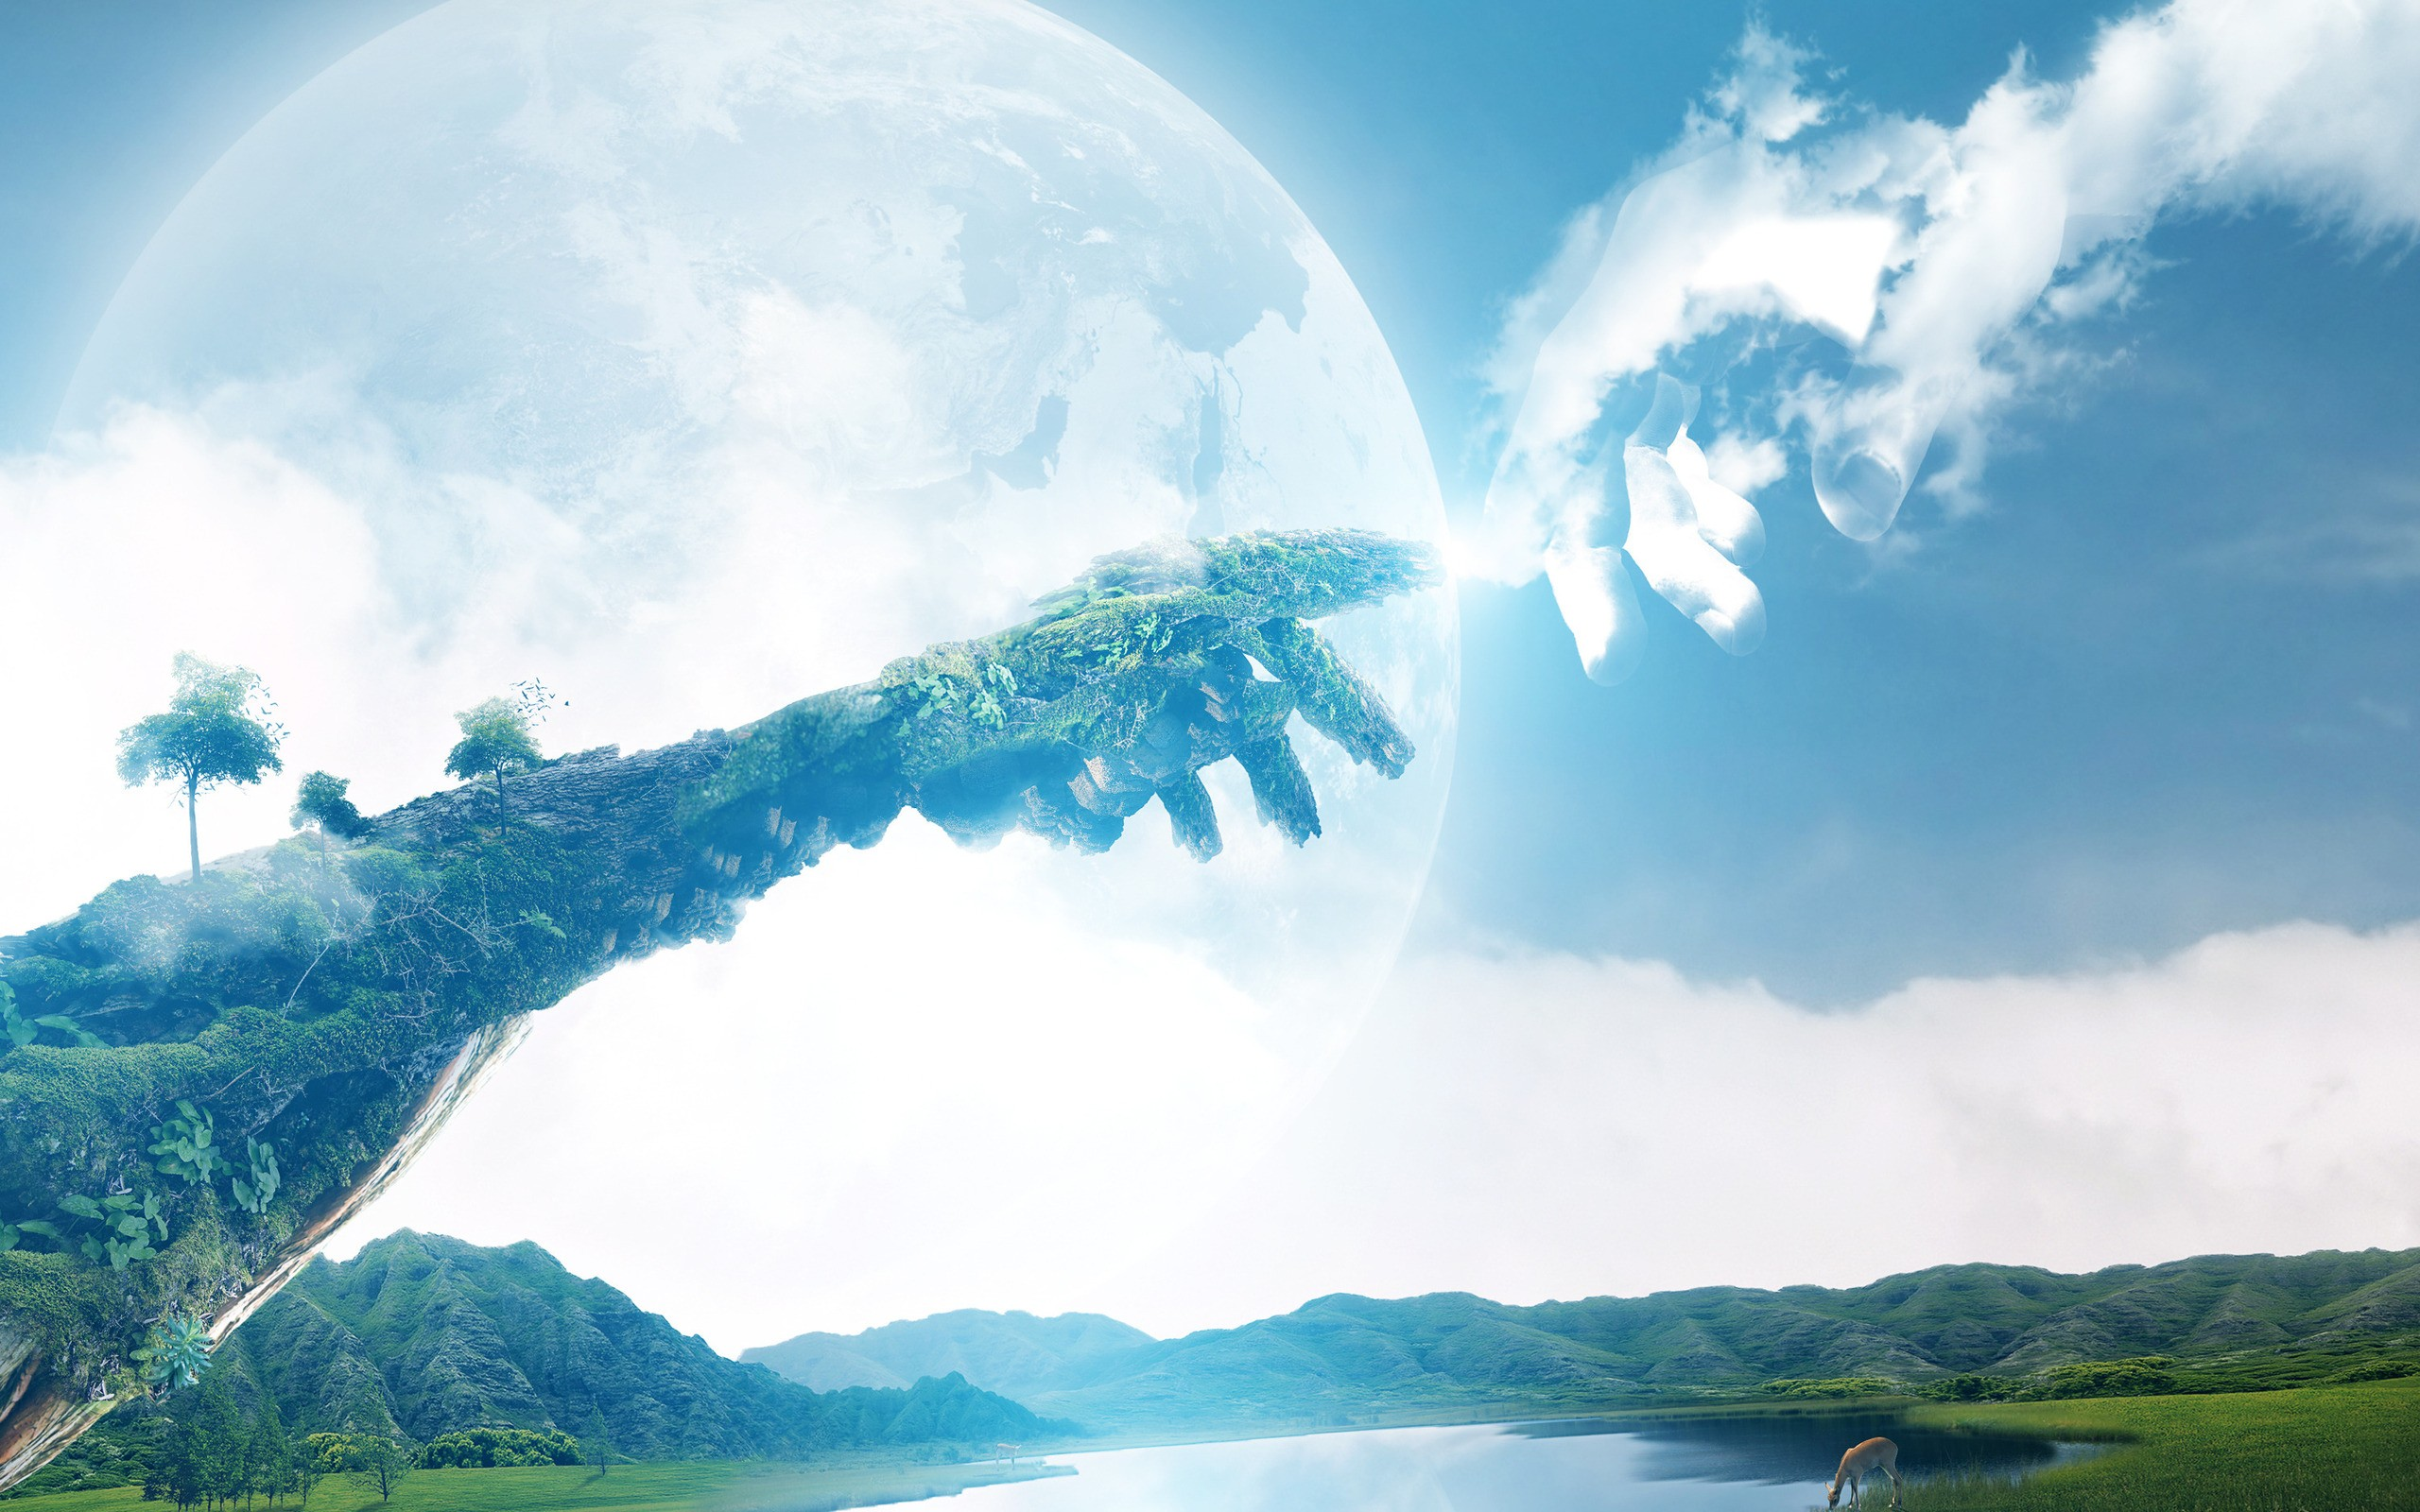 General 2560x1600 digital art hands fingers nature Moon The Creation of Adam trees double exposure lake hills deer clouds God forest birds plants moss grass